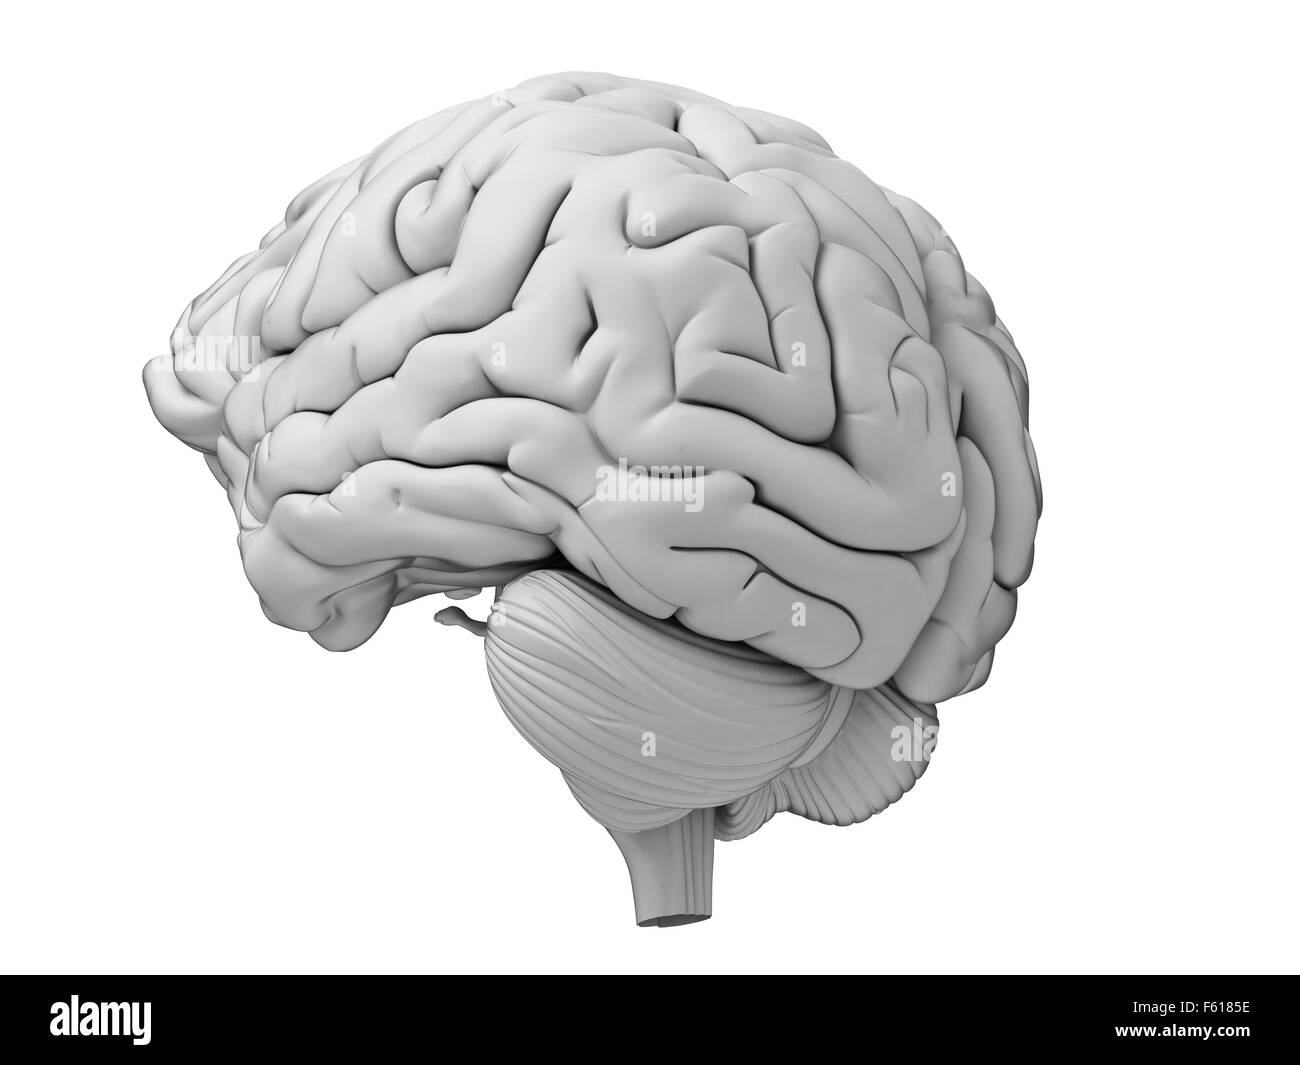 Illustration de l'exacte médicalement le cerveau humain Photo Stock